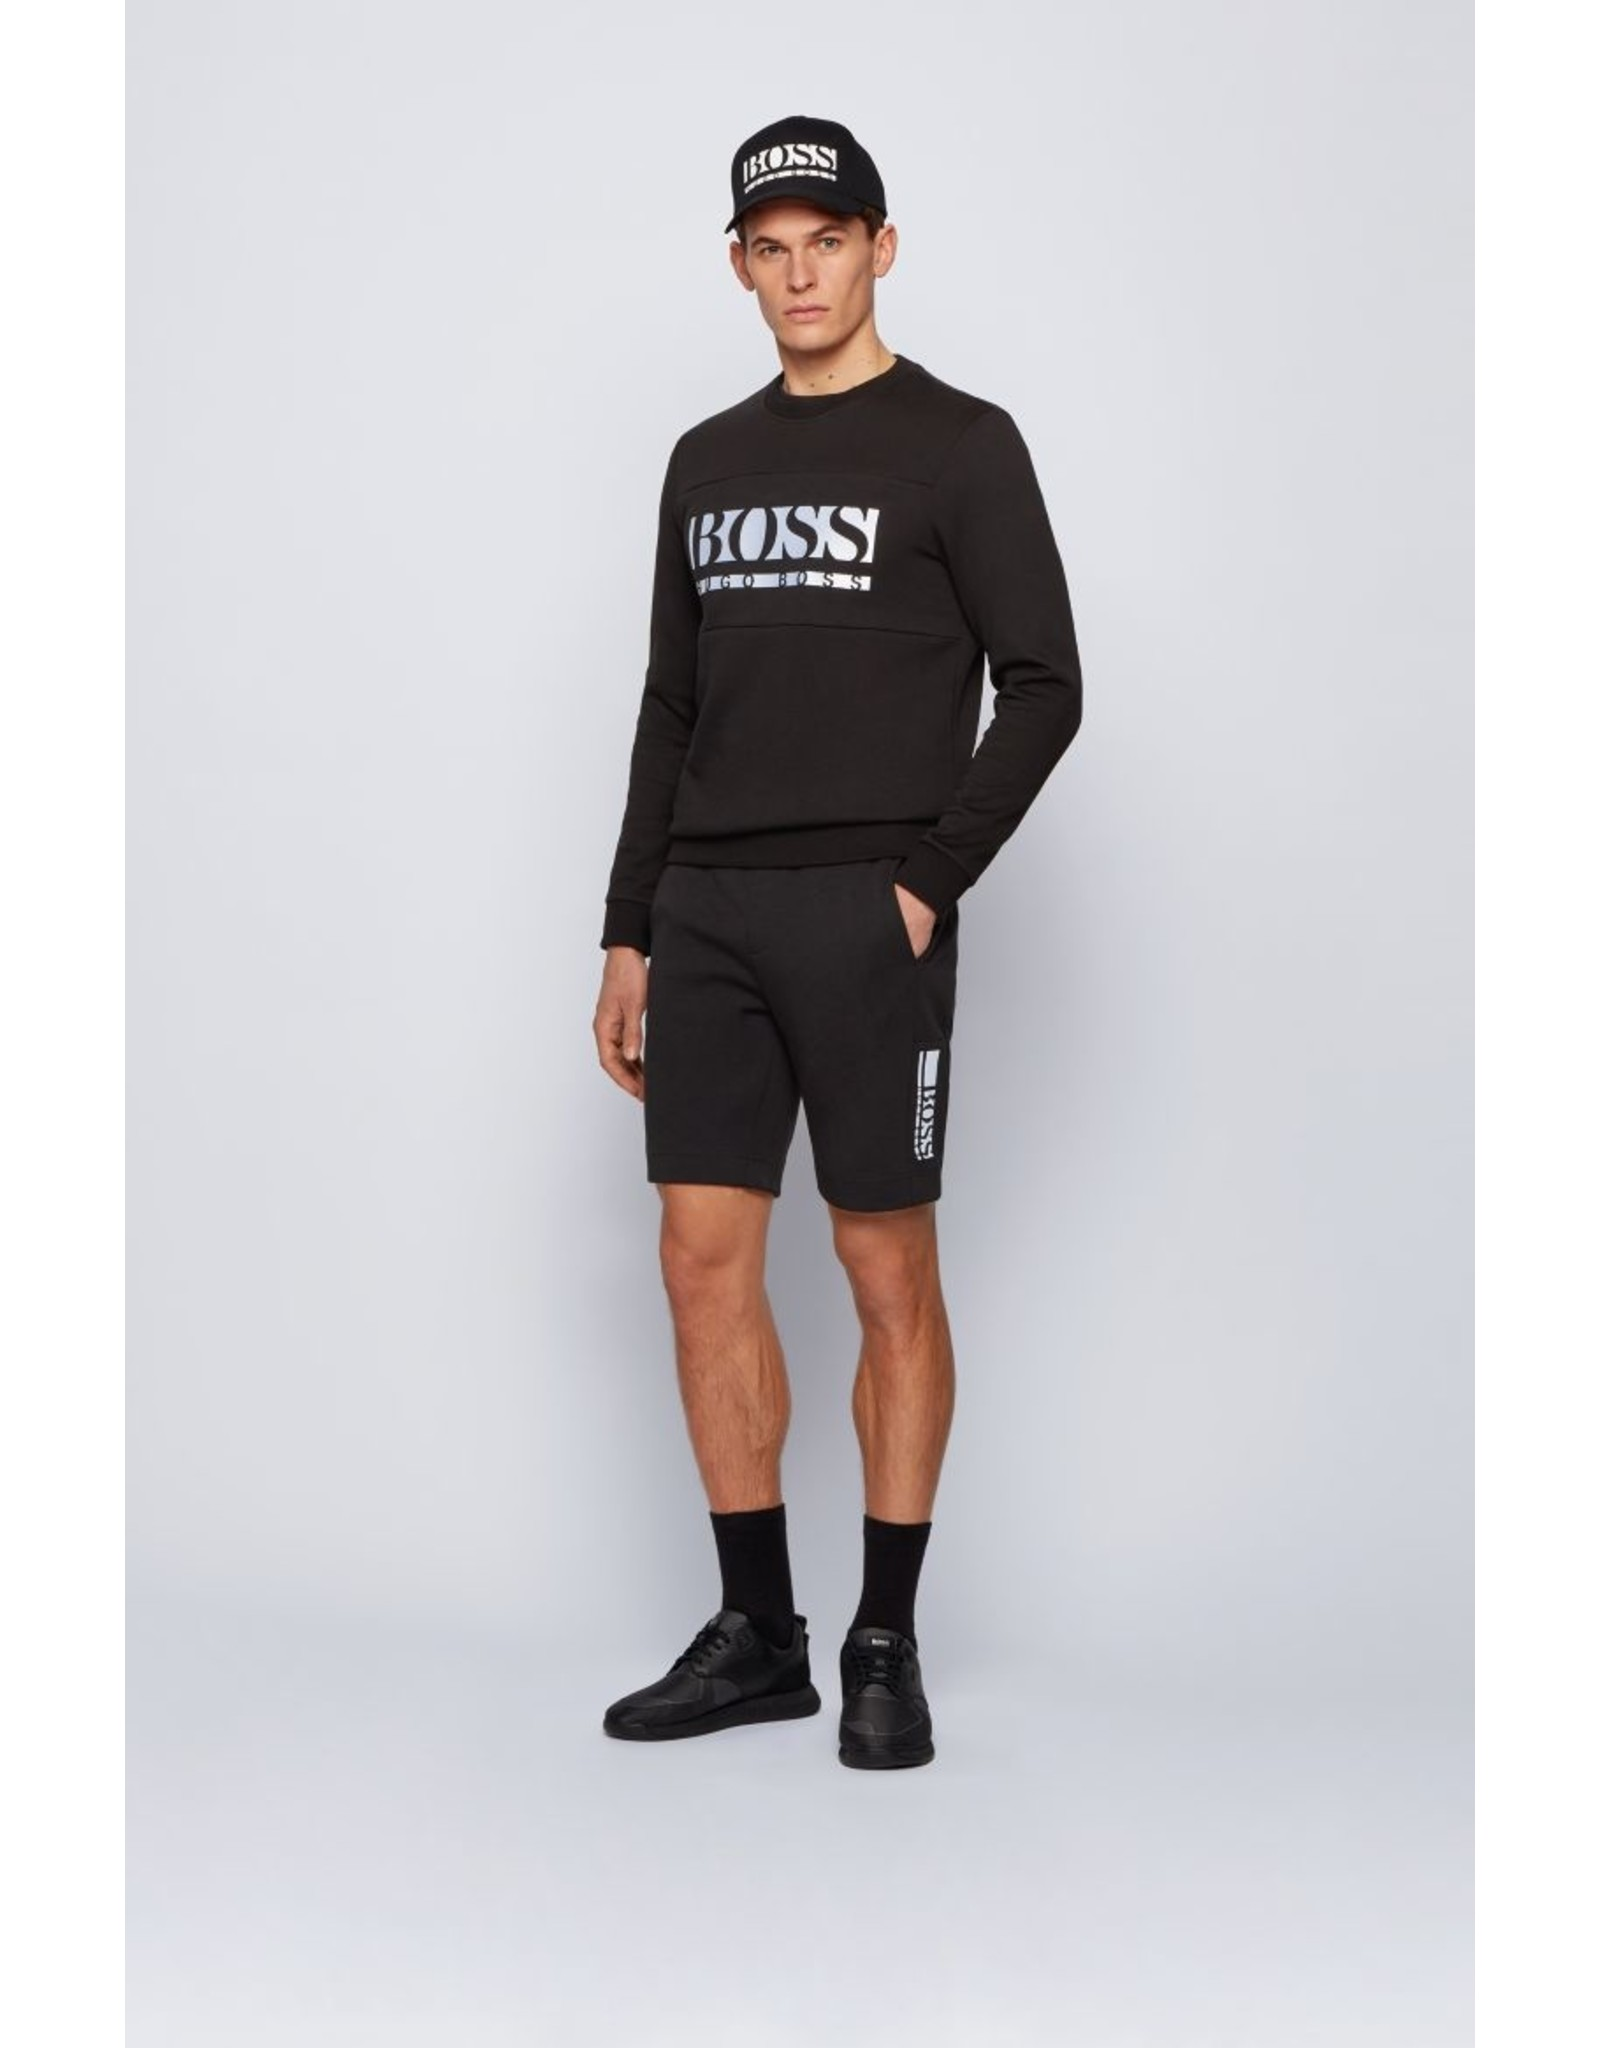 BOSS ATHLEISURE BOSS ATHLEISURE HEADLO 1 SS21